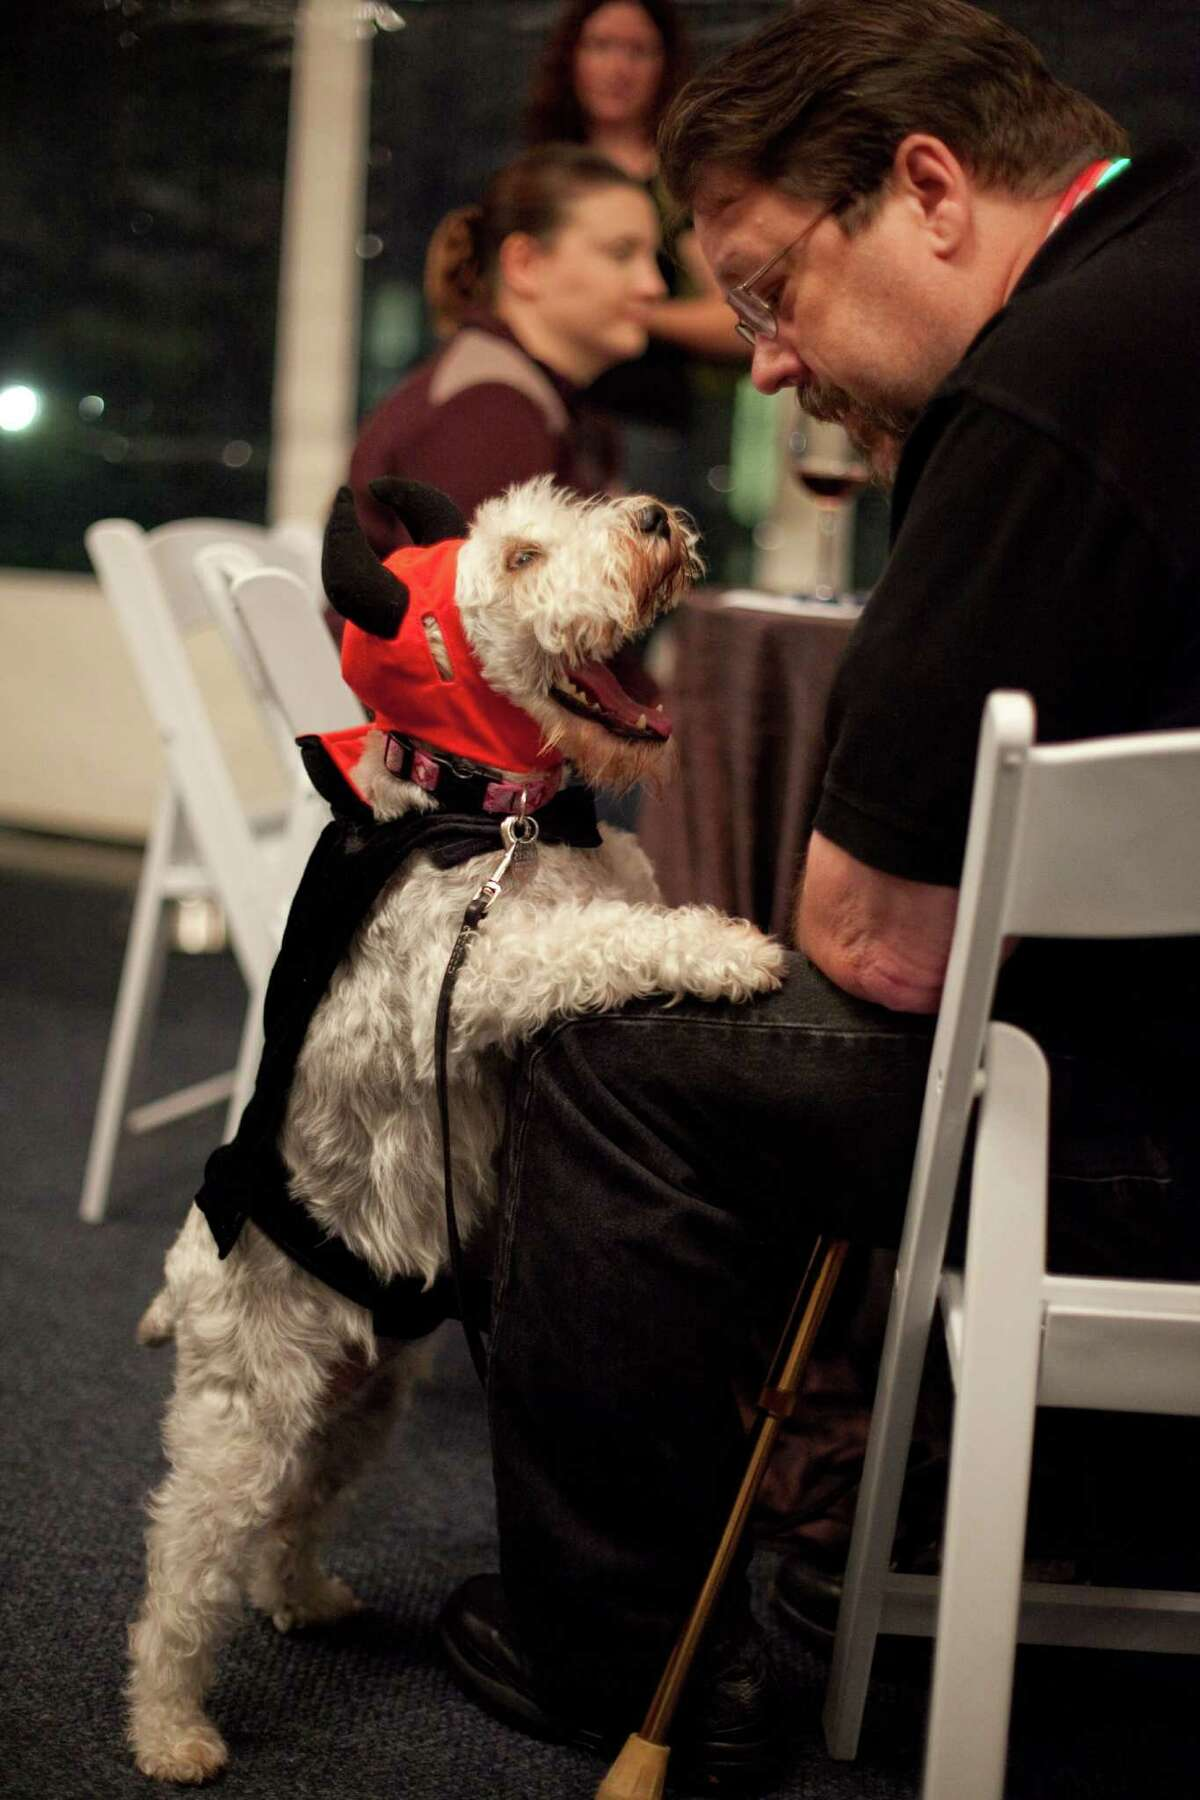 A pup rests on his owner during the CityDog Magazine inaugural Howl-at-the-Moon Muttmixer at the Woodmark Hotel in Kirkland on Tuesday, October 30th, 2012. Dozens of dogs in costume attended the event.